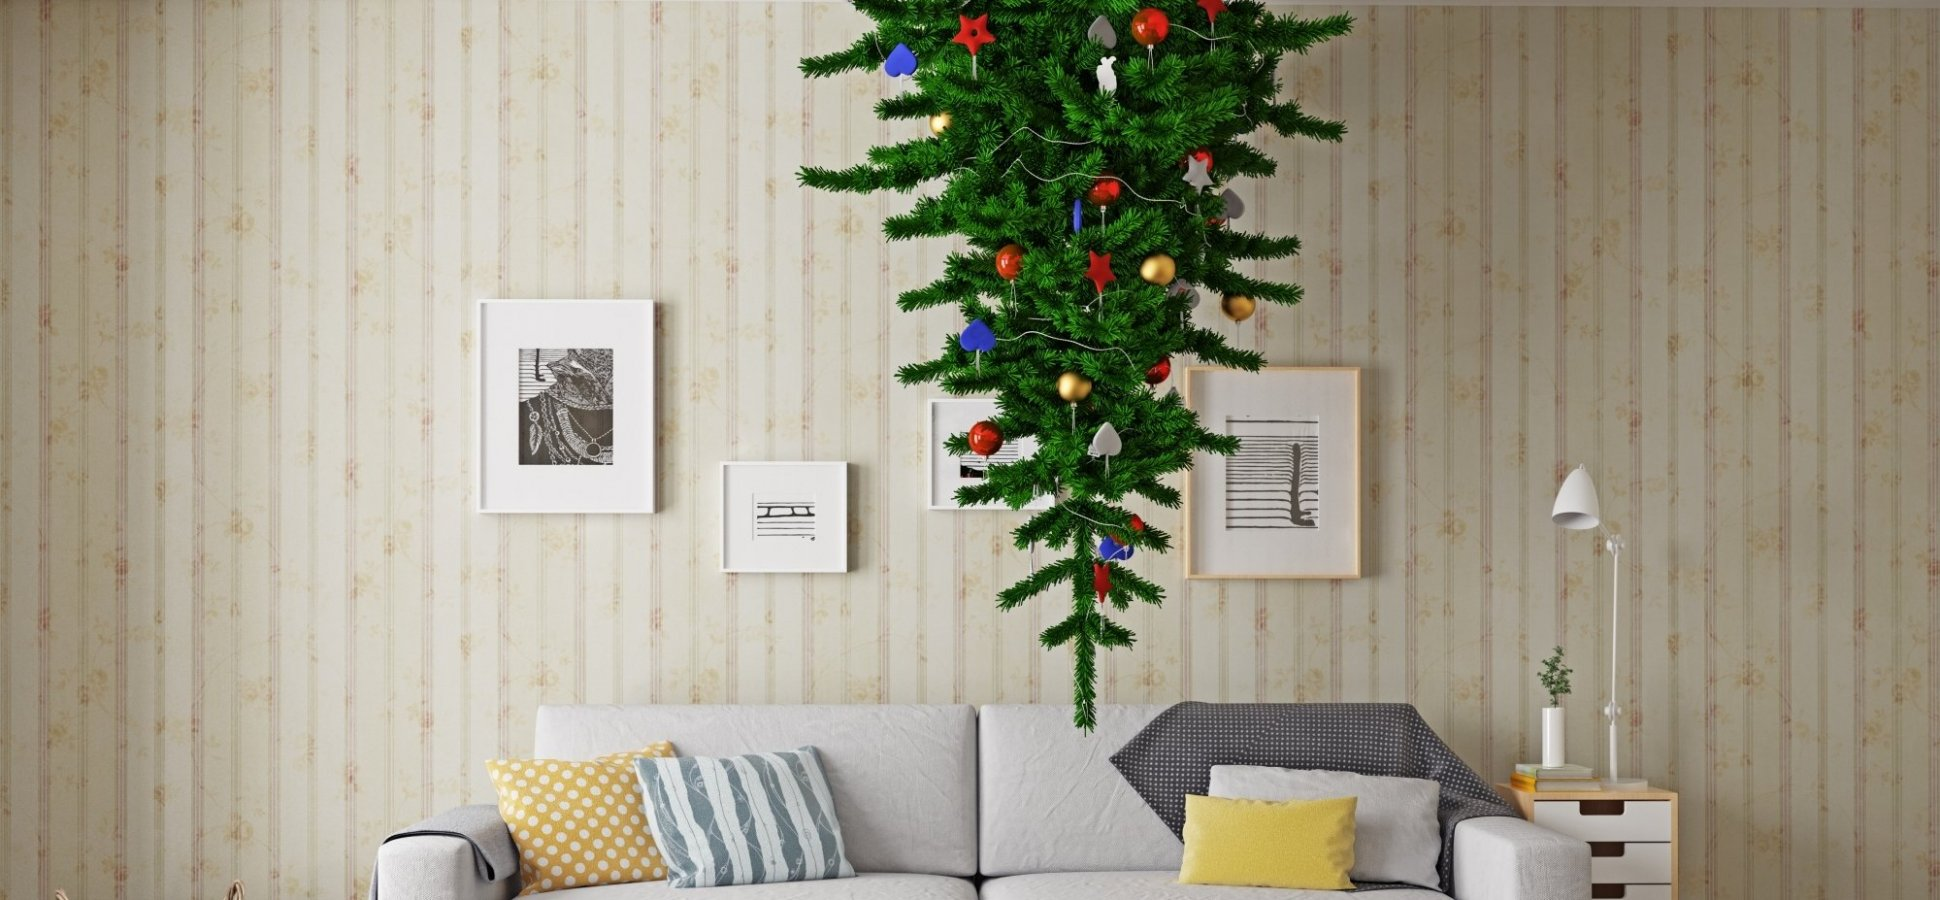 upside down christmas trees are ridiculous heres why you might want one anyway inccom